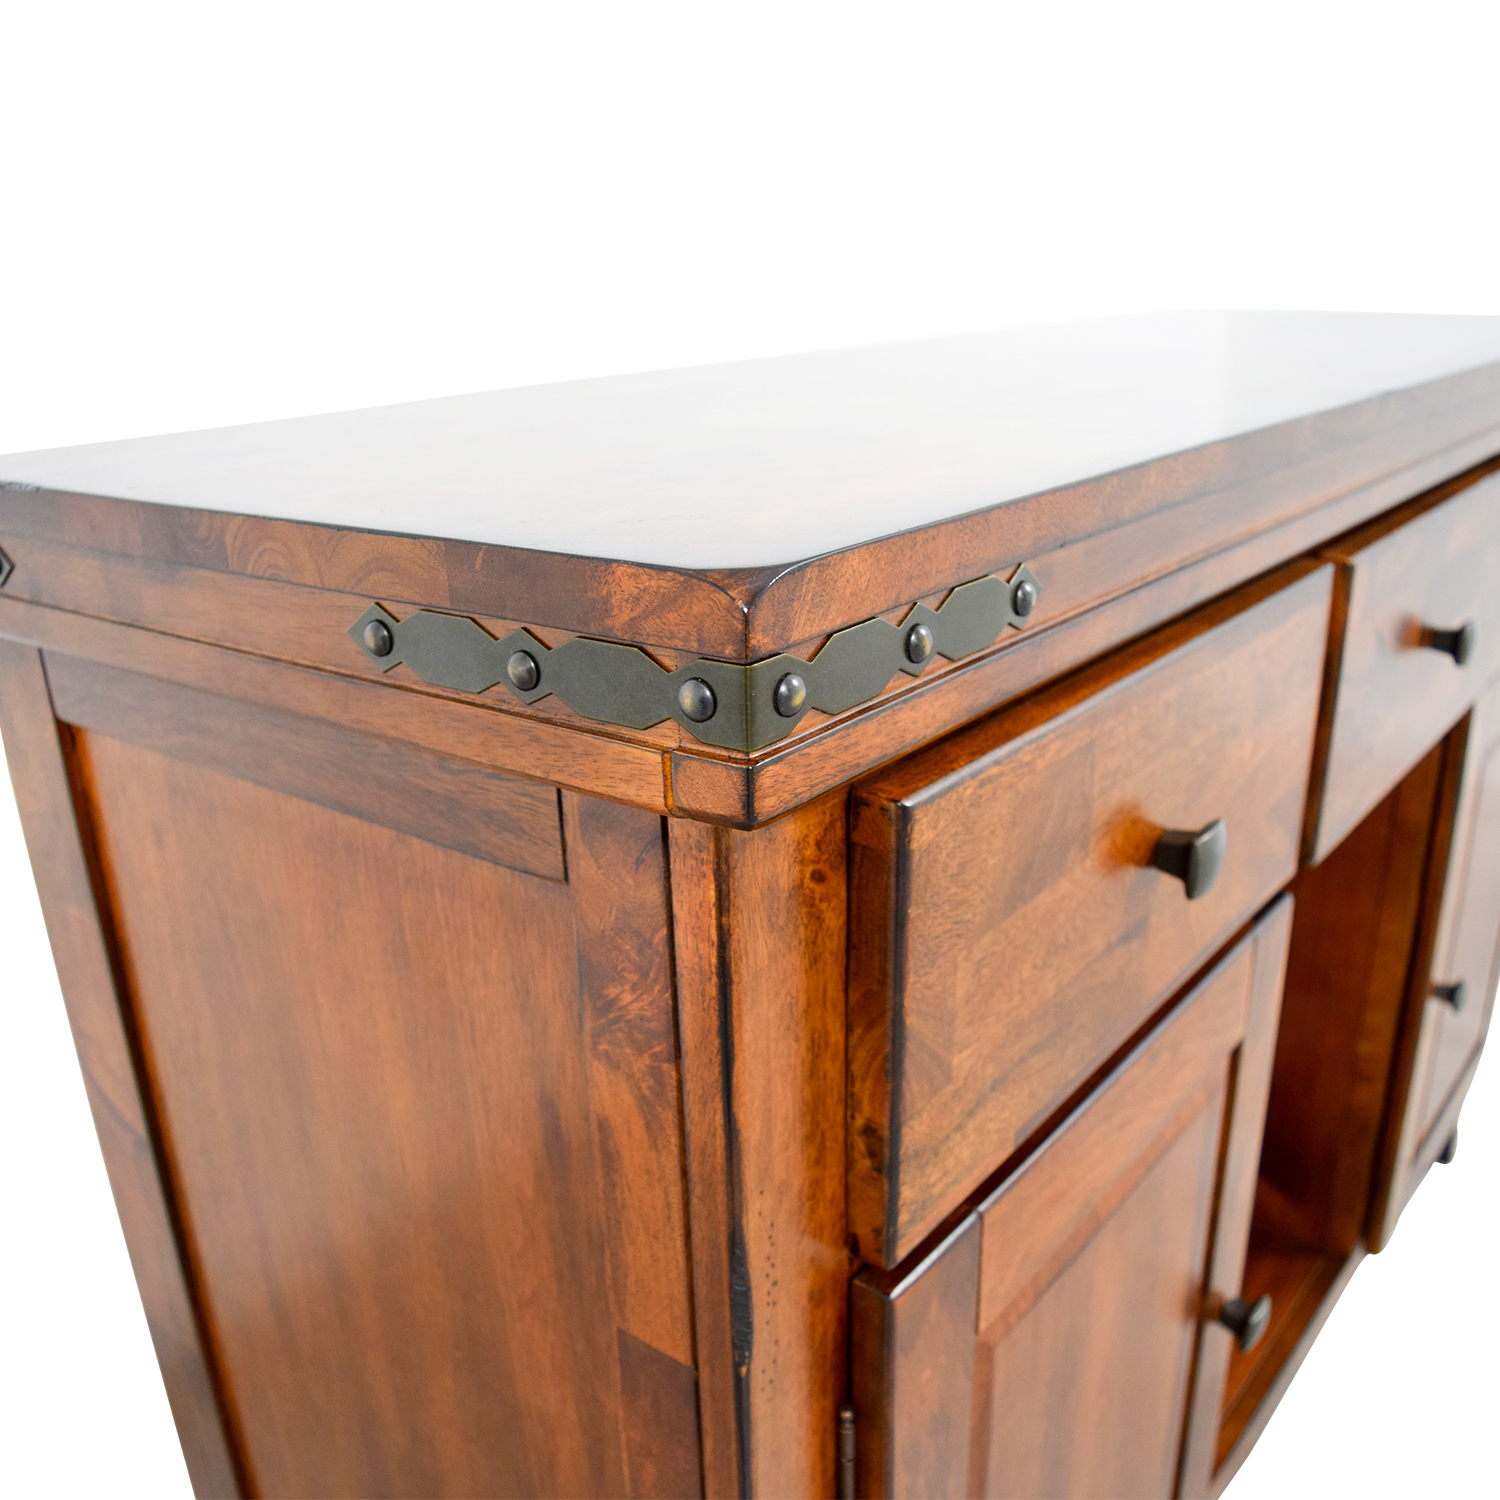 40 OFF Bobs Furniture Bobs Furniture Bar Table Or